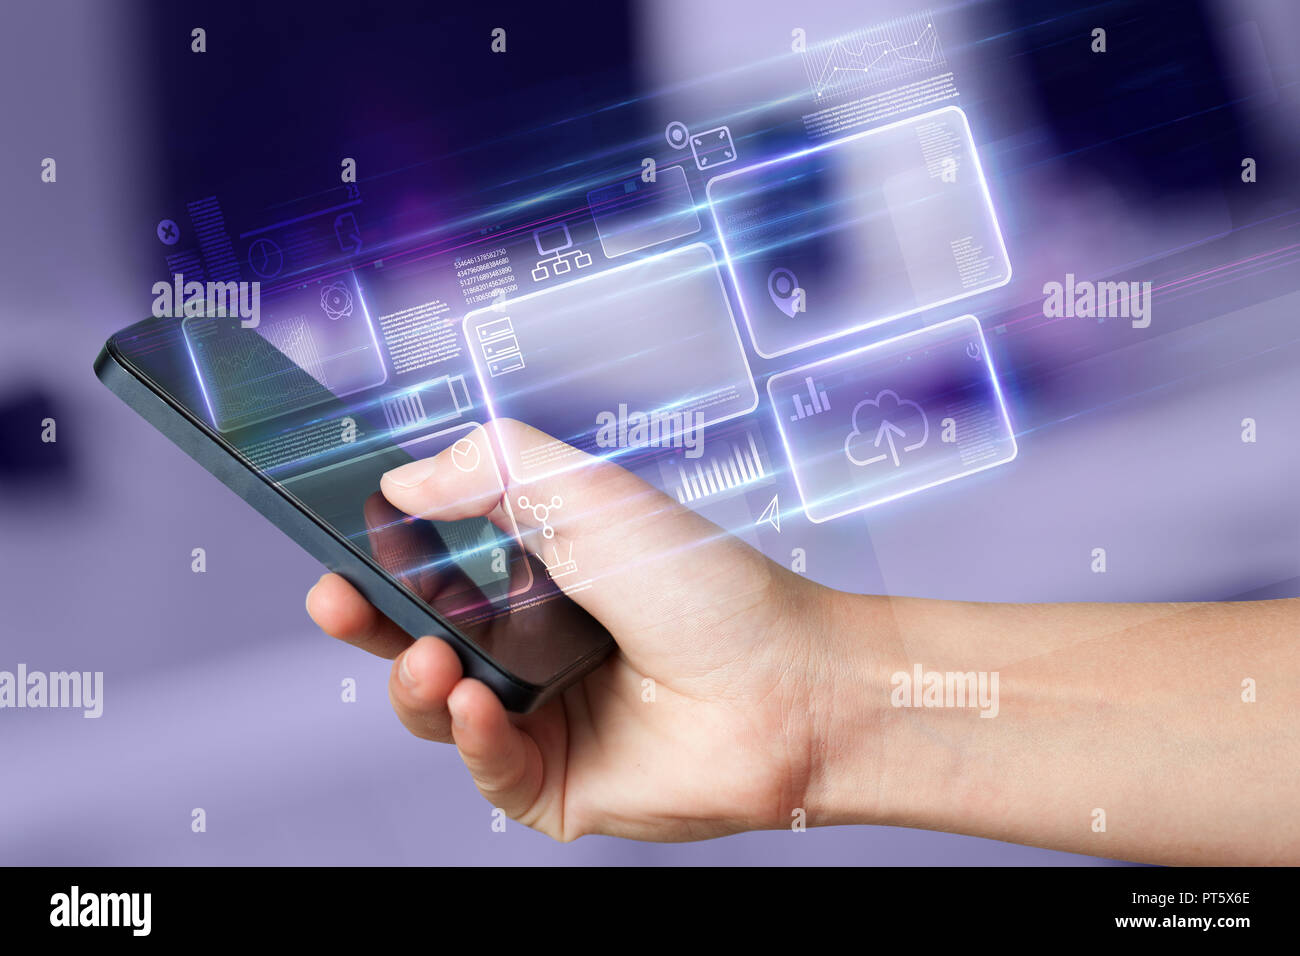 Hand using  phone with database reports and online work concept  - Stock Image